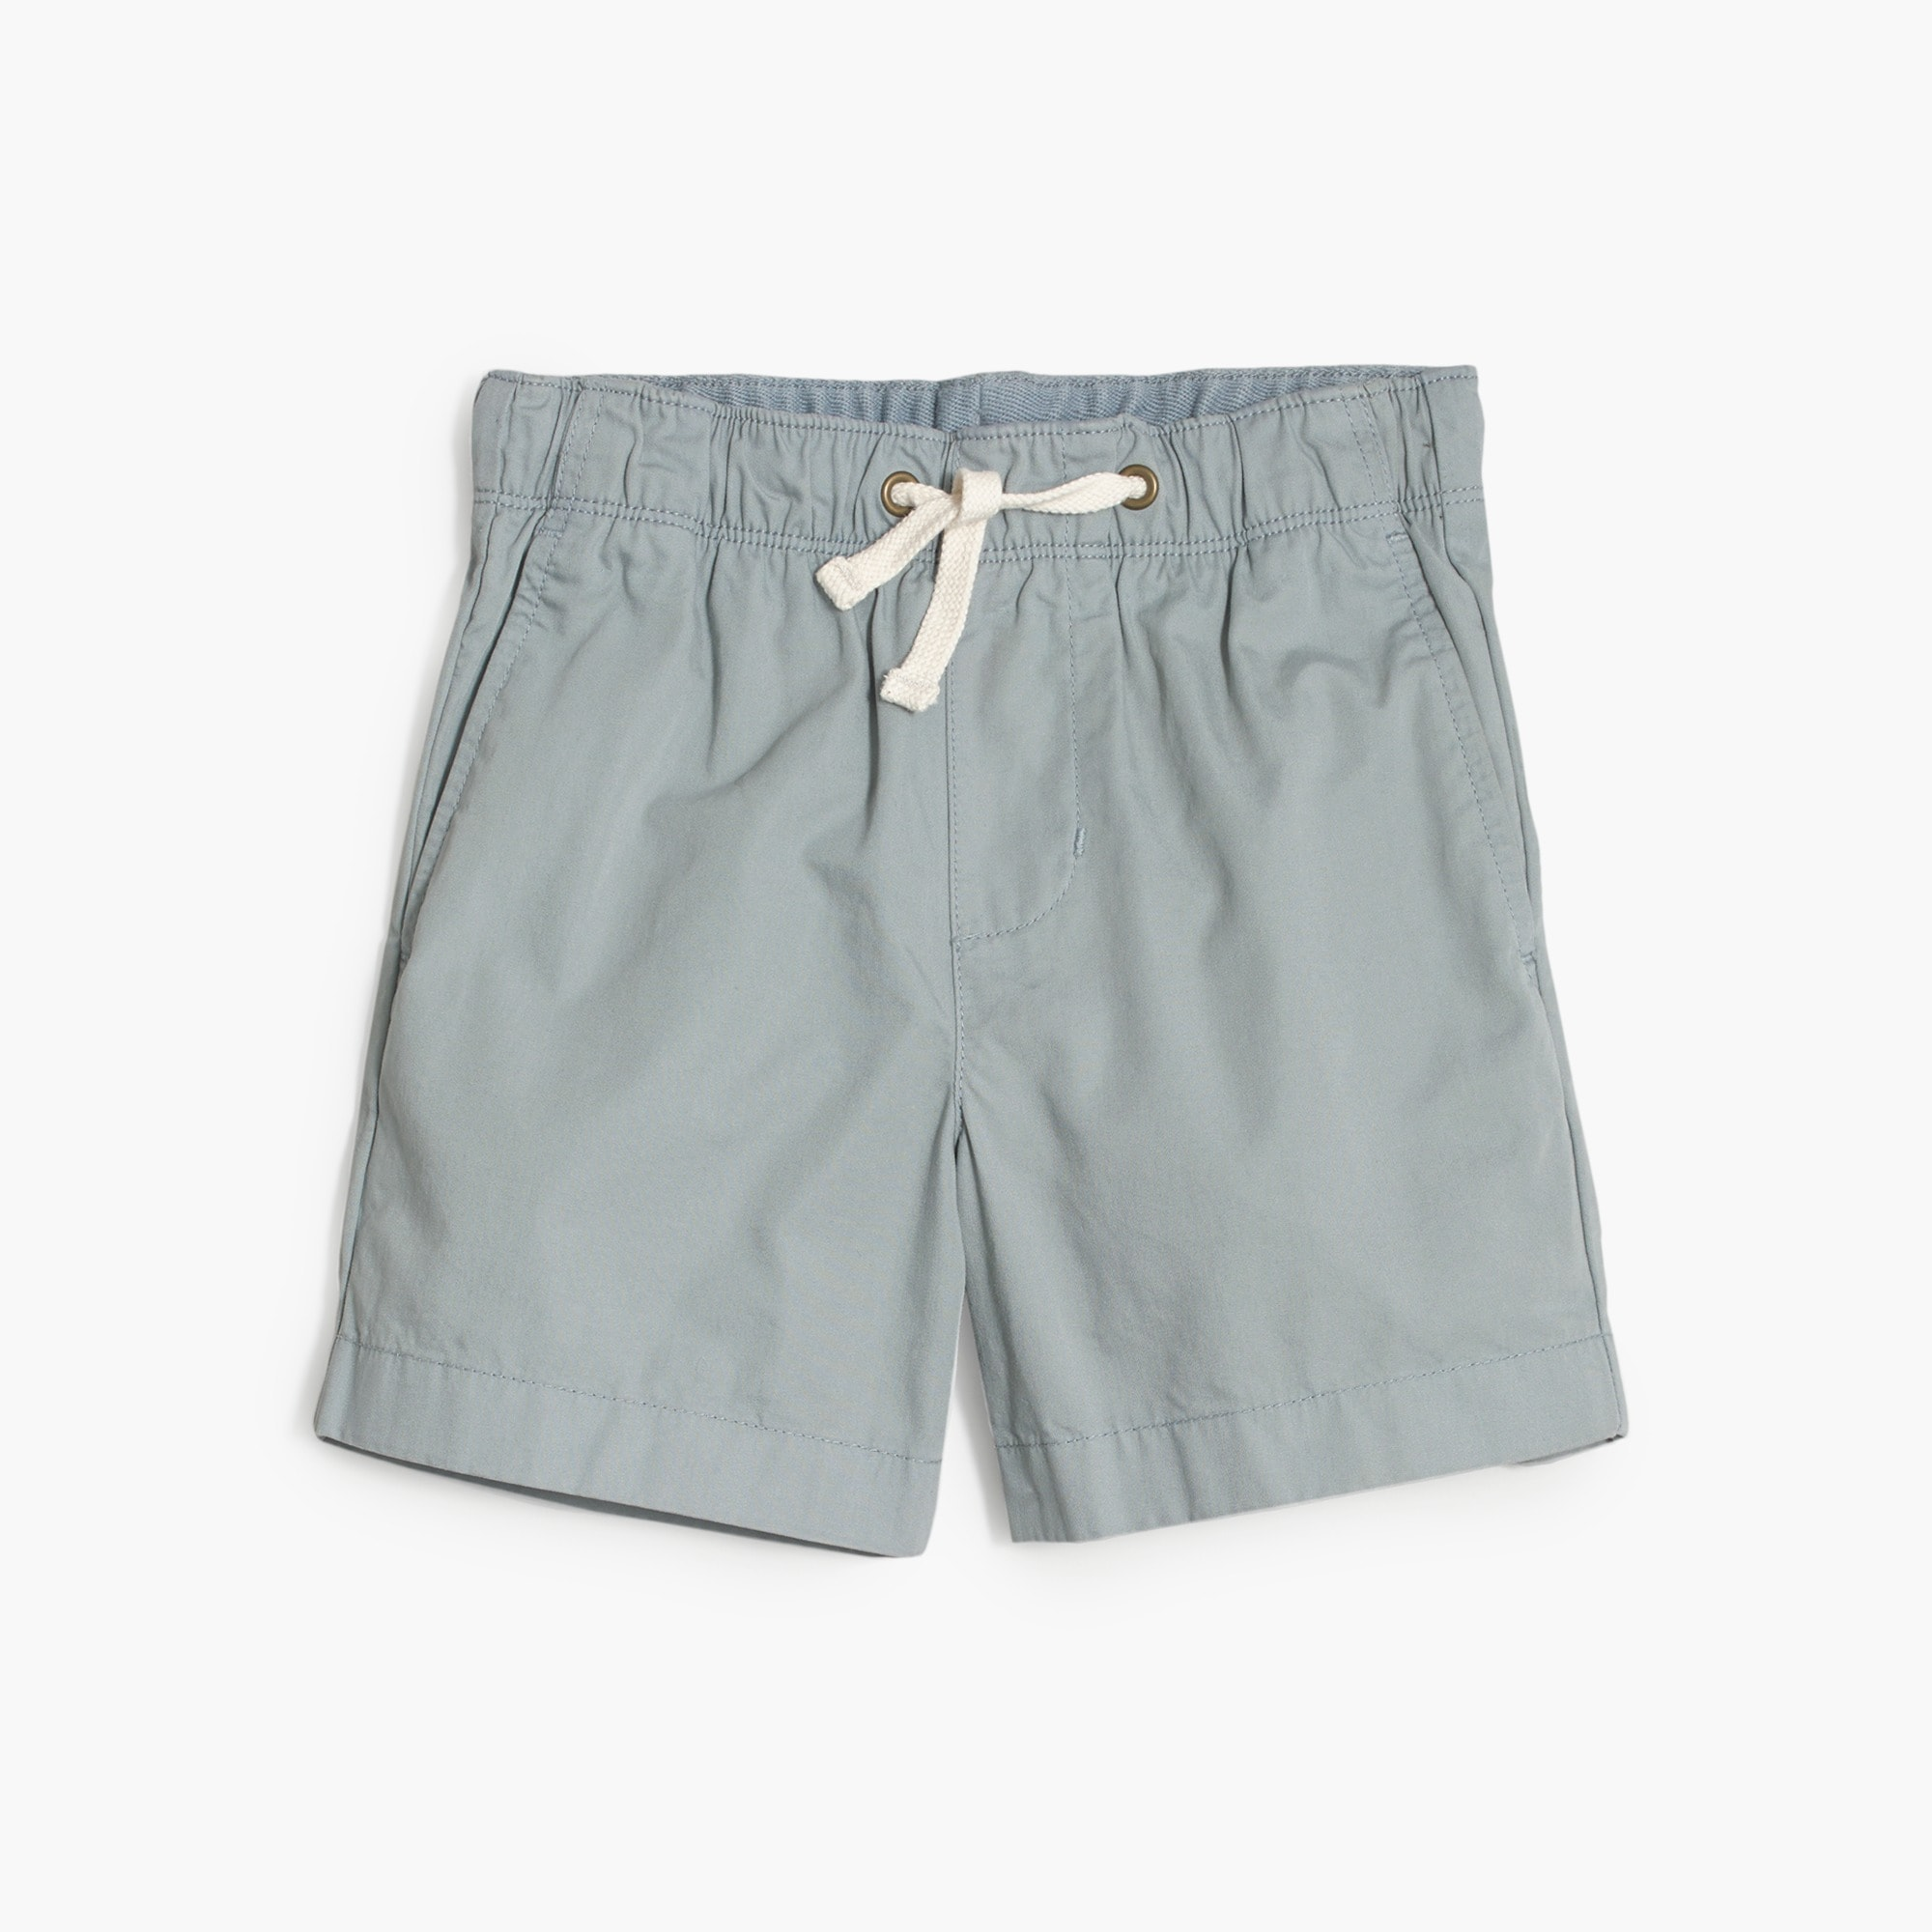 Image 3 for Boys' dock short in garment-dyed chino